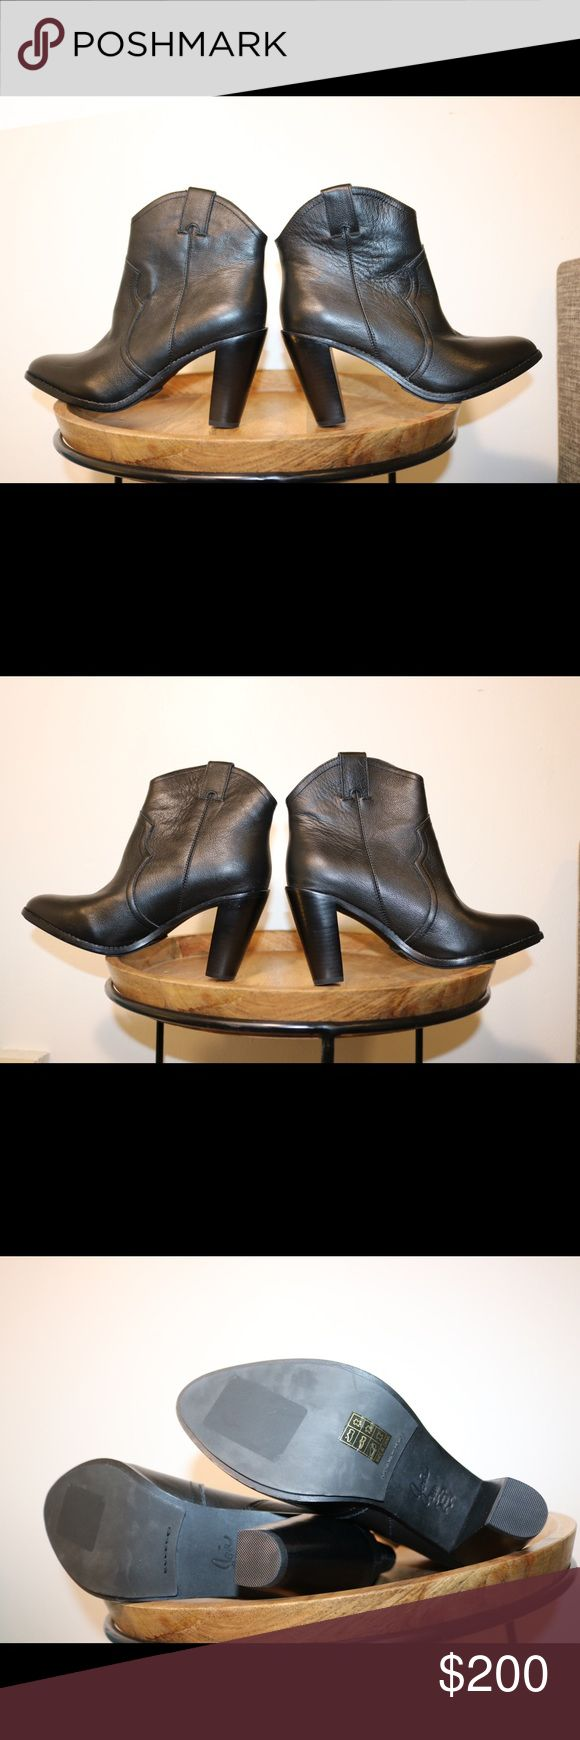 NWOT Joie Black Leather Booties Brand new. Never worn outside of the store. Please note photos were taken with a high resolution camera so things that may look like flaws are just lighting and resolution. I disclose all issues within the item description. Joie Shoes Ankle Boots & Booties